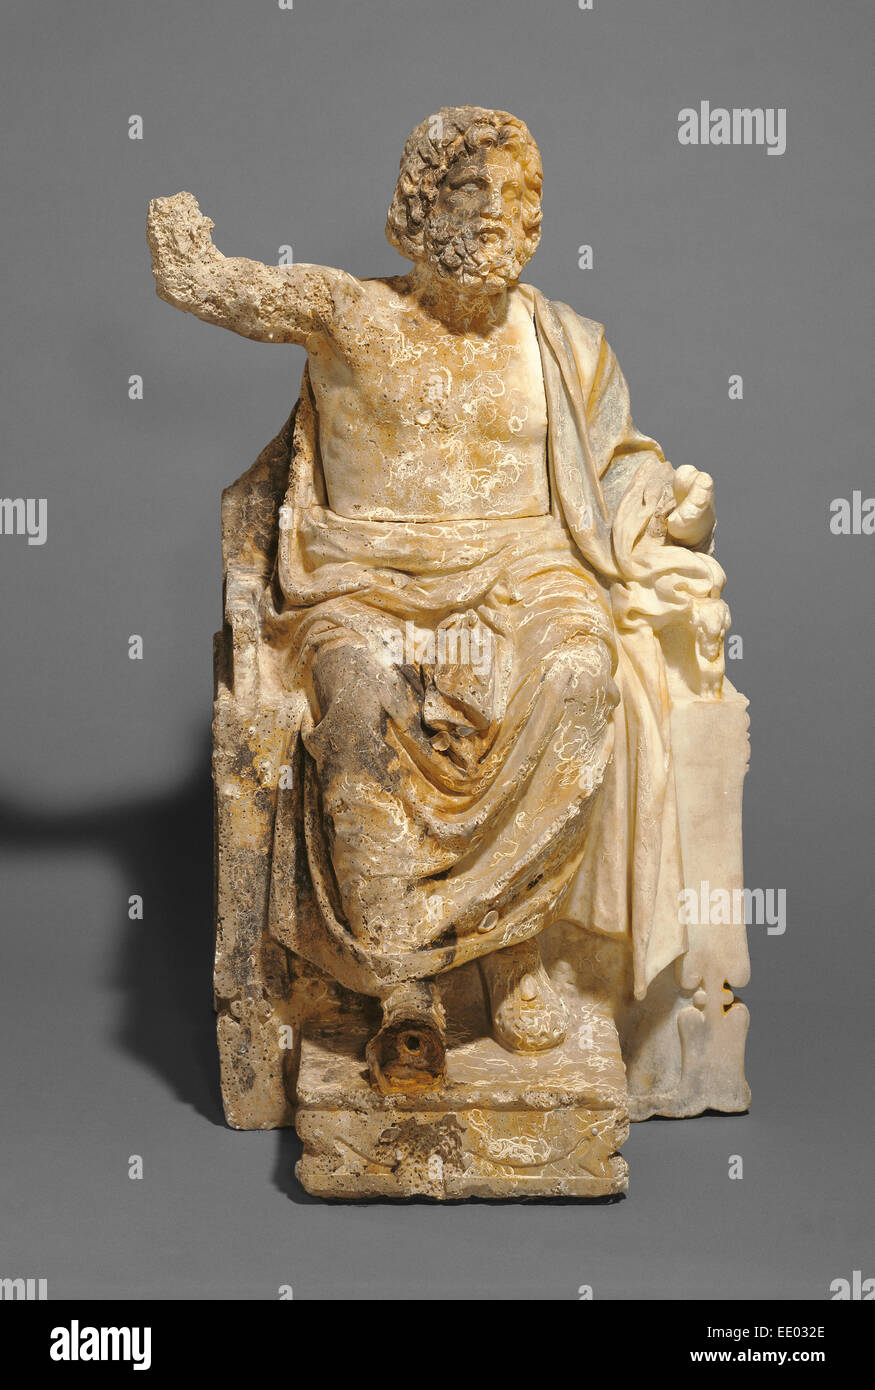 Statue of Zeus Enthroned; Unknown; about 100 B.C.; Marble - Stock Image